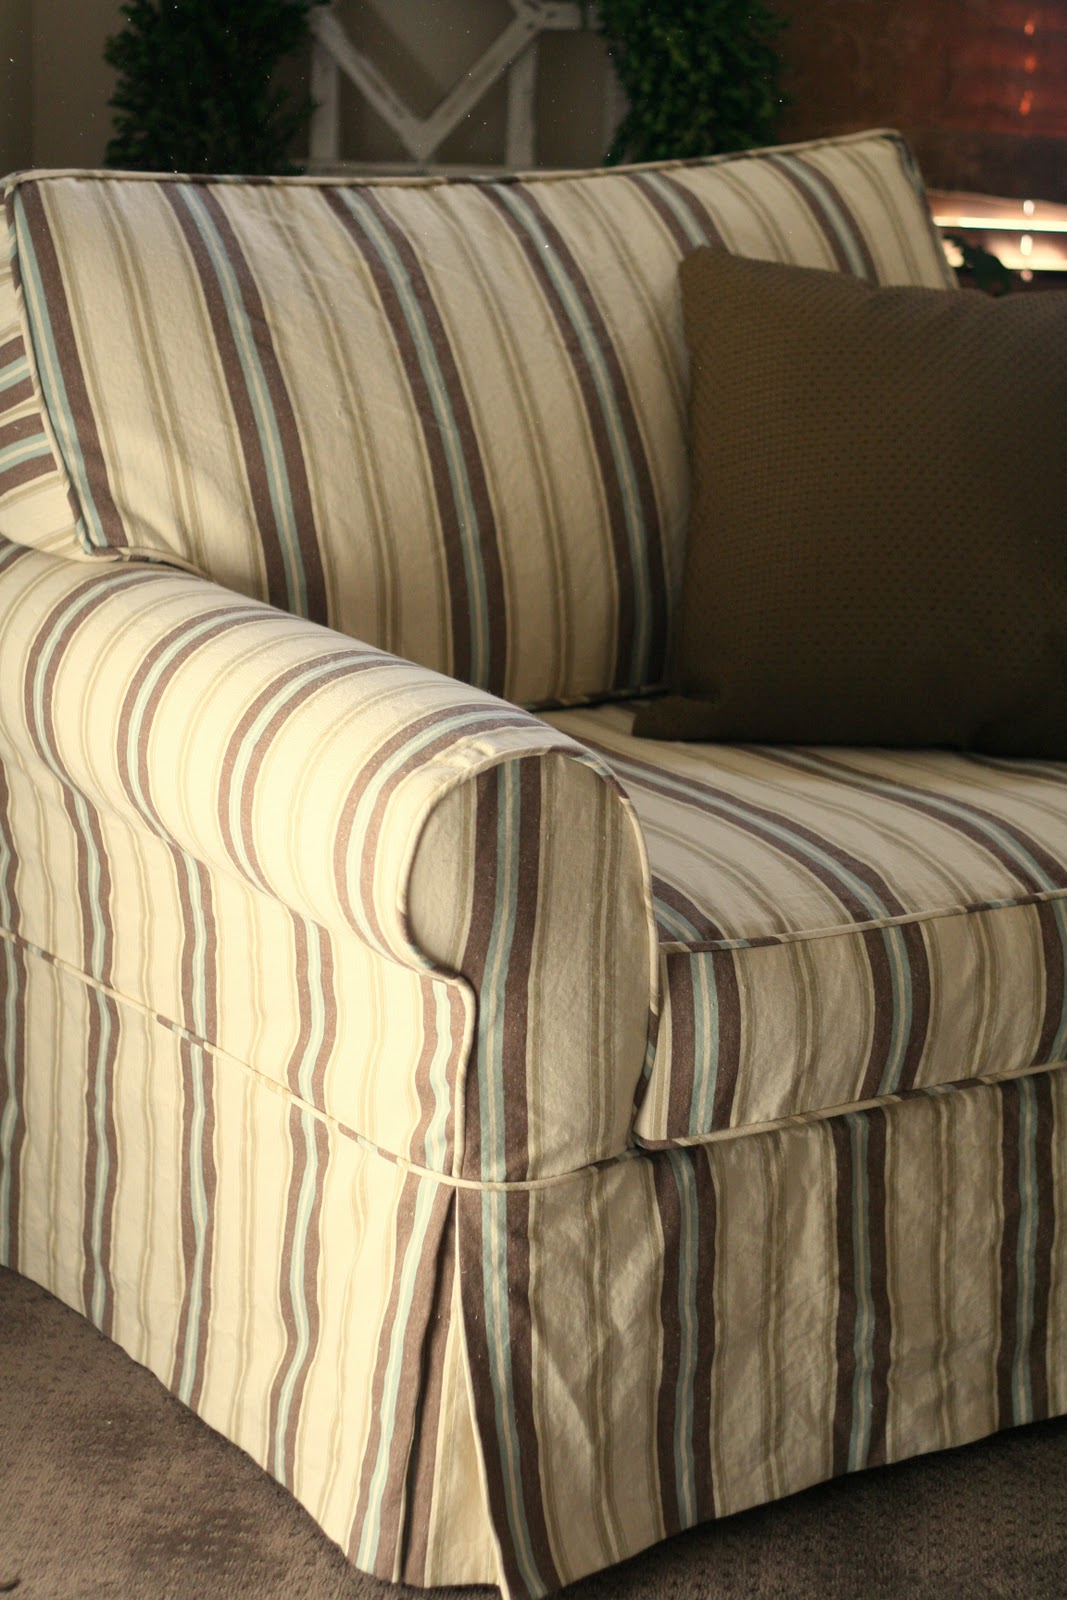 Custom Slipcovers By Shelley Striped Oversized Chair